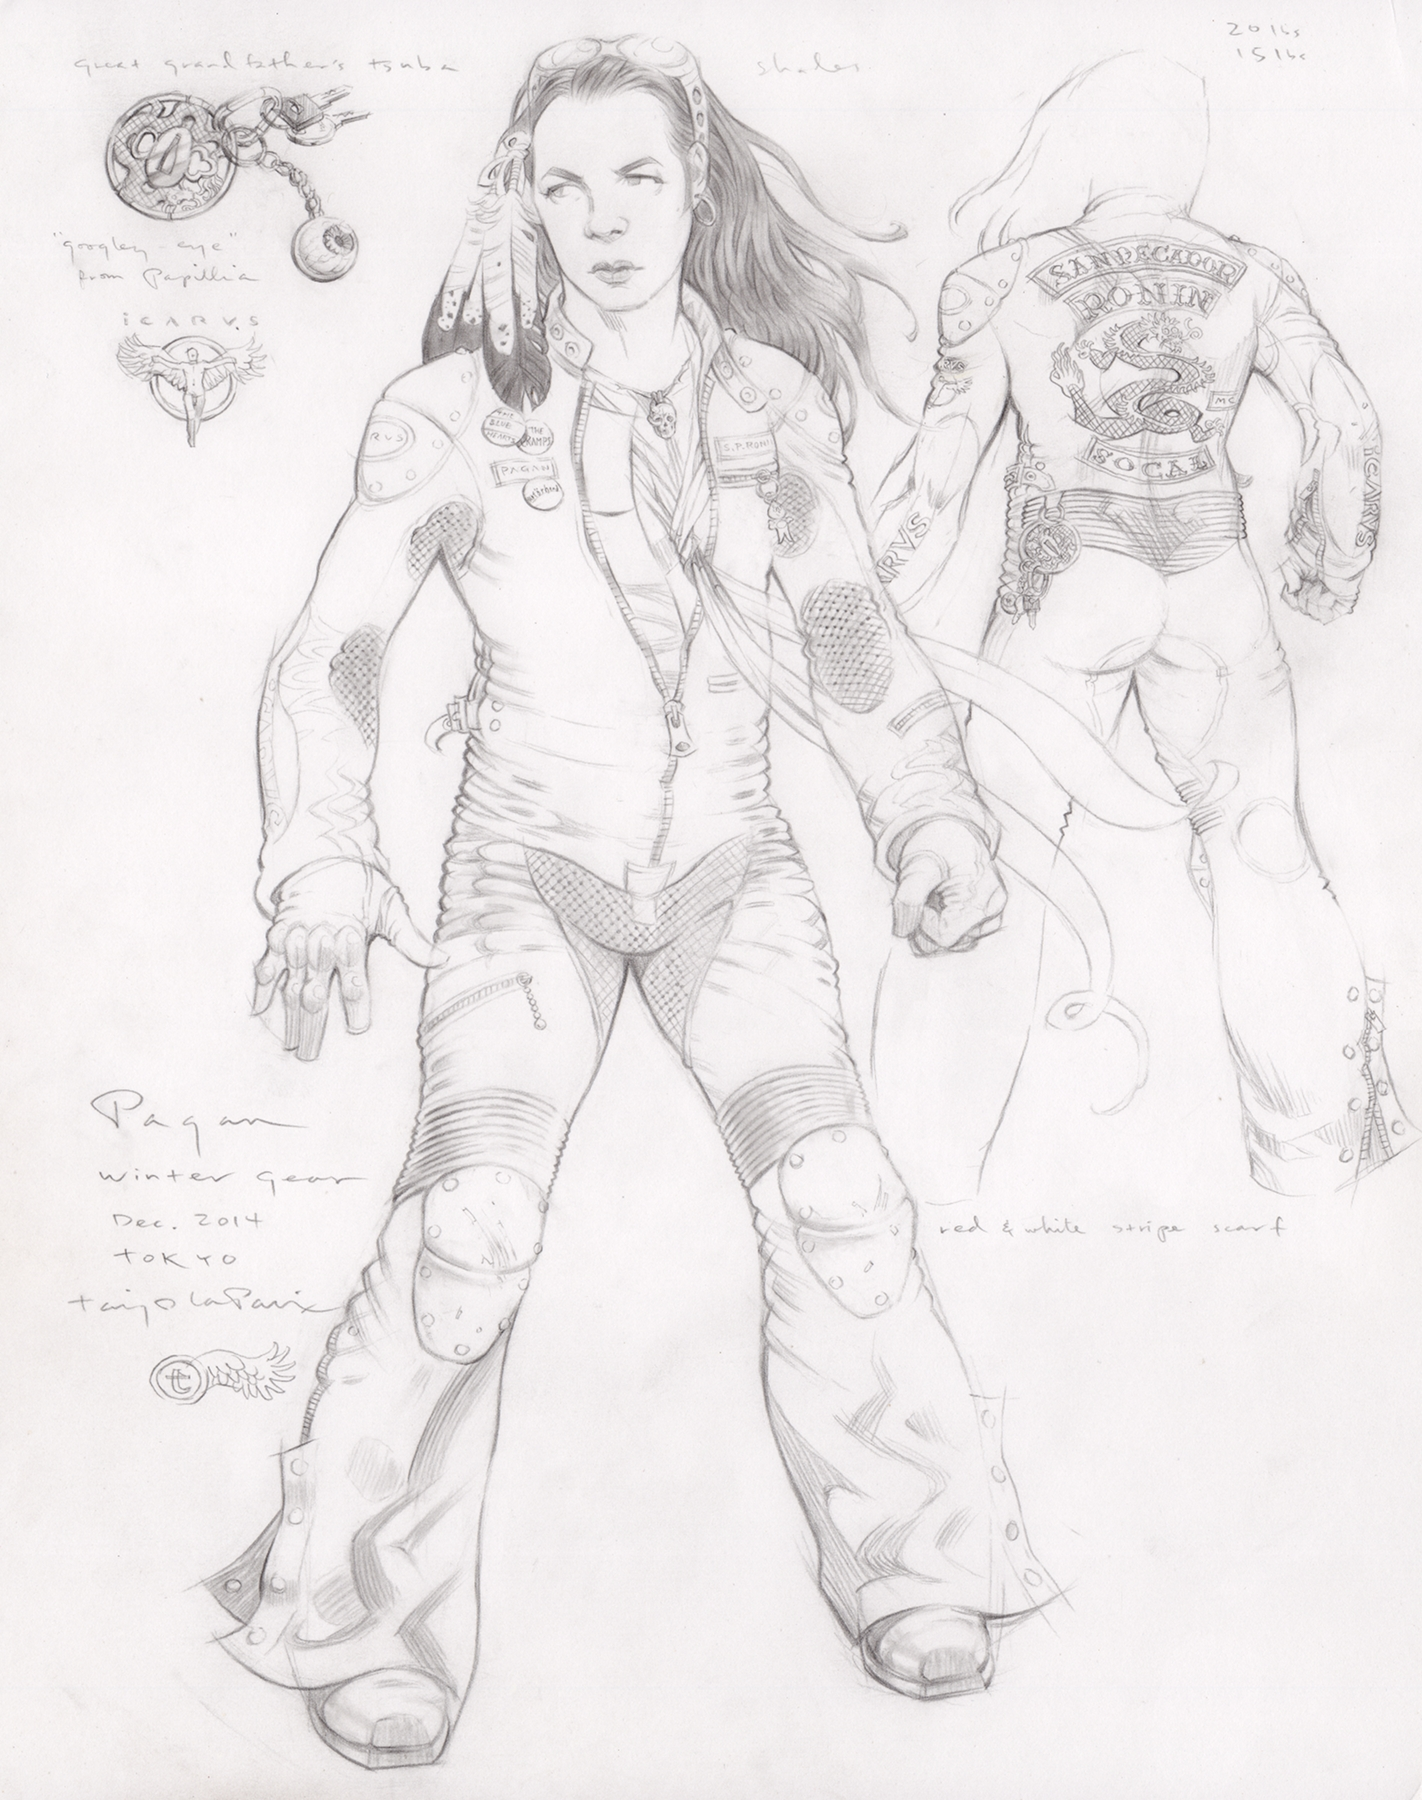 Pagan, Winter Gear, 2015, pencil on paper, 14 x 11 inches